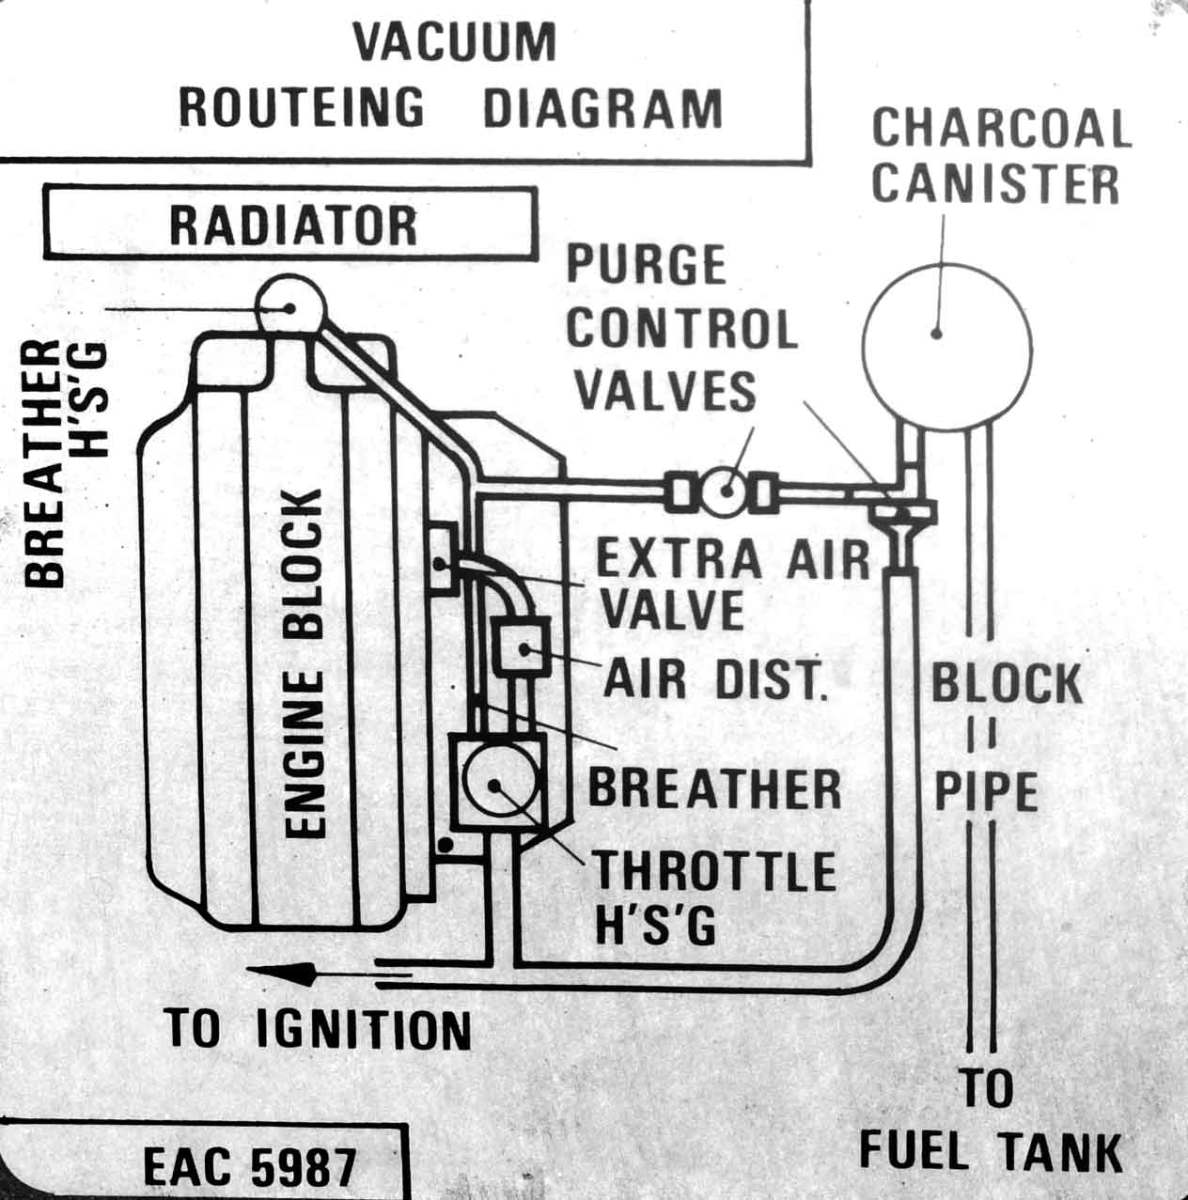 saturn astra engine diagram saturn sl2 engine diagram how to find and fix a vacuum leak axleaddict